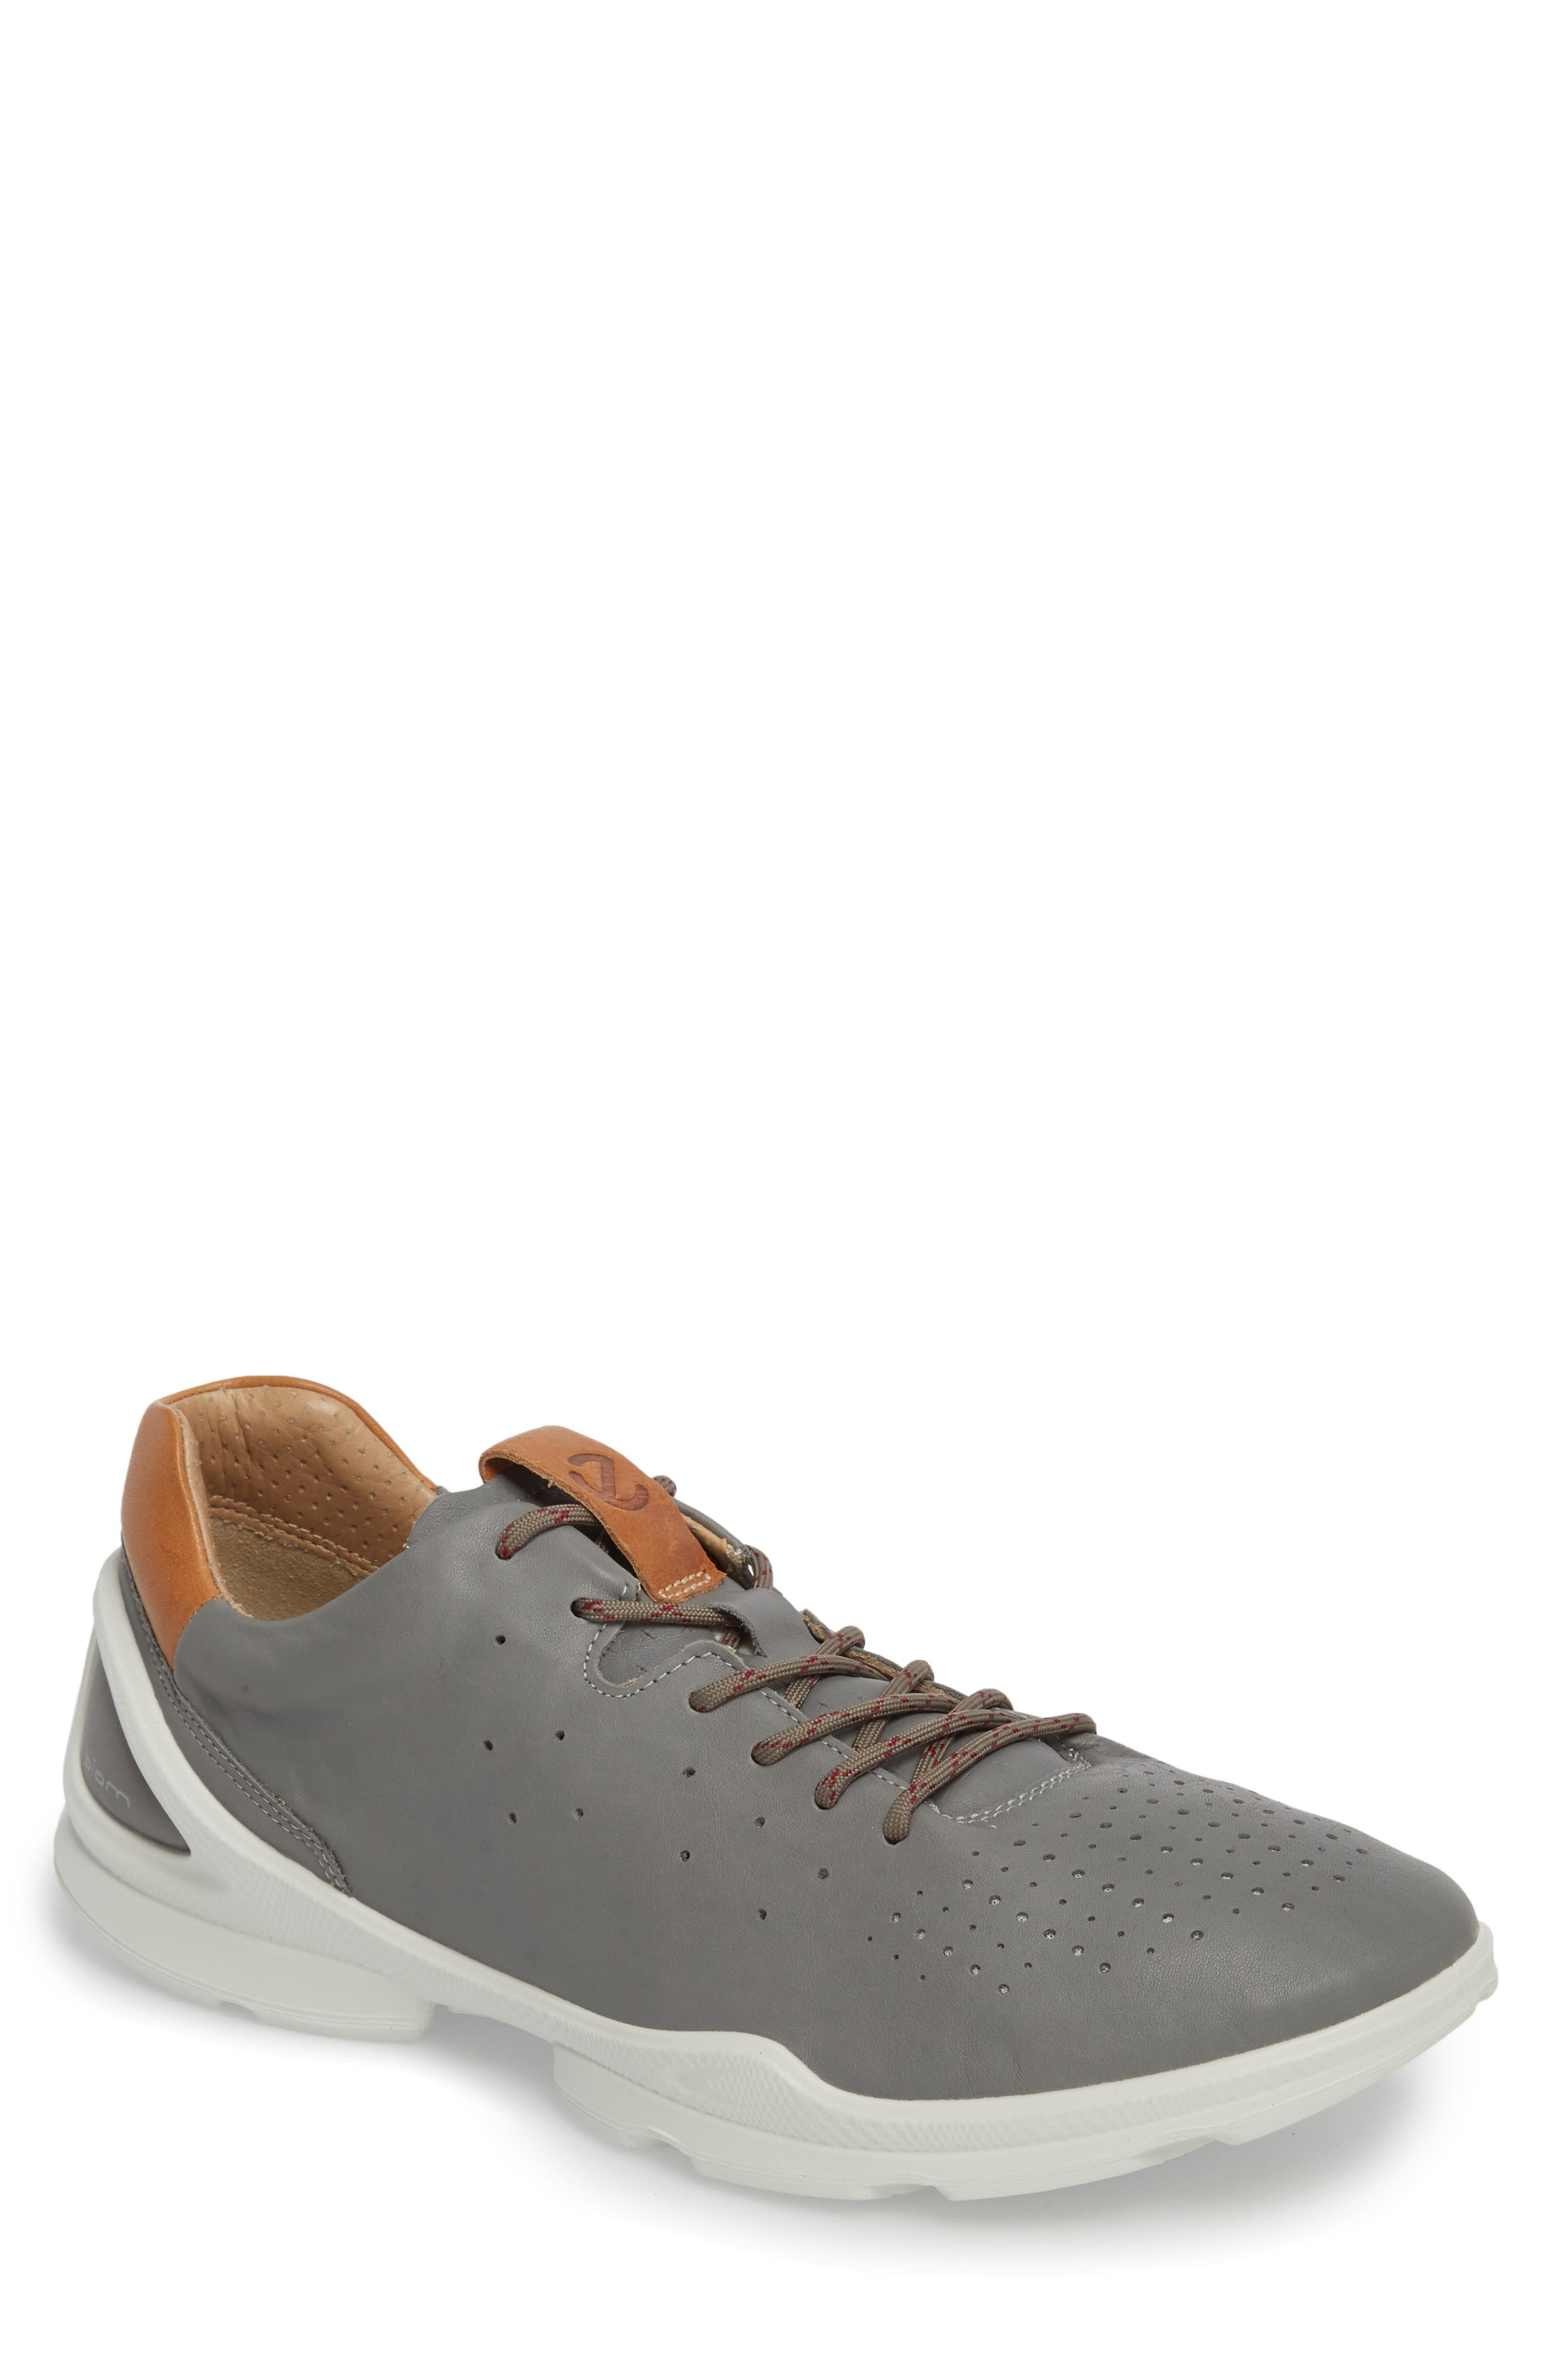 Biom Street Sneaker,                             Main thumbnail 1, color,                             Wild Dove Leather